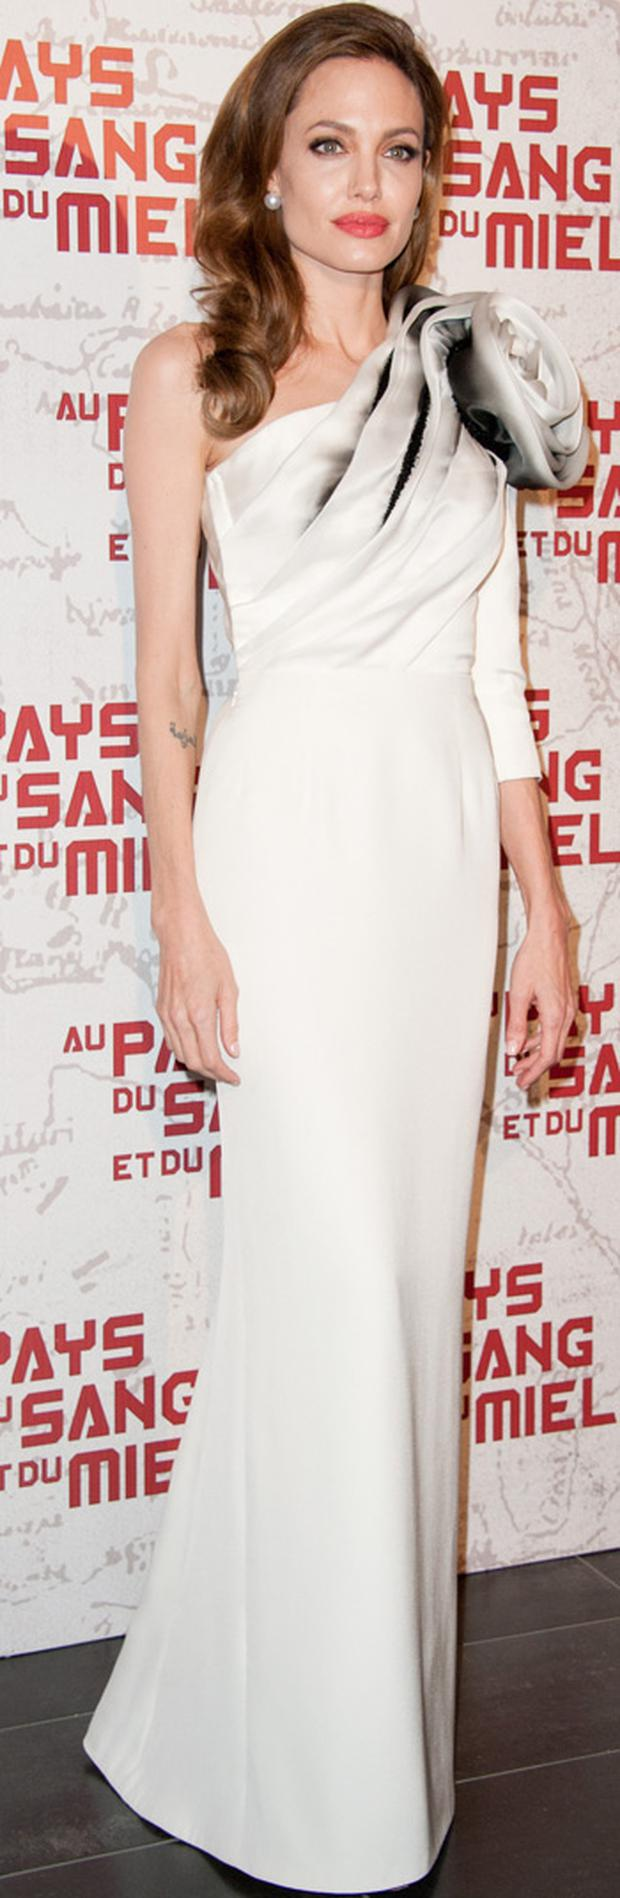 Angelina Jolie wears Ralph & Russo to the 'In the Land Of Blood And Honey' Pairs premiere on February 16, 2012 in Paris, France.